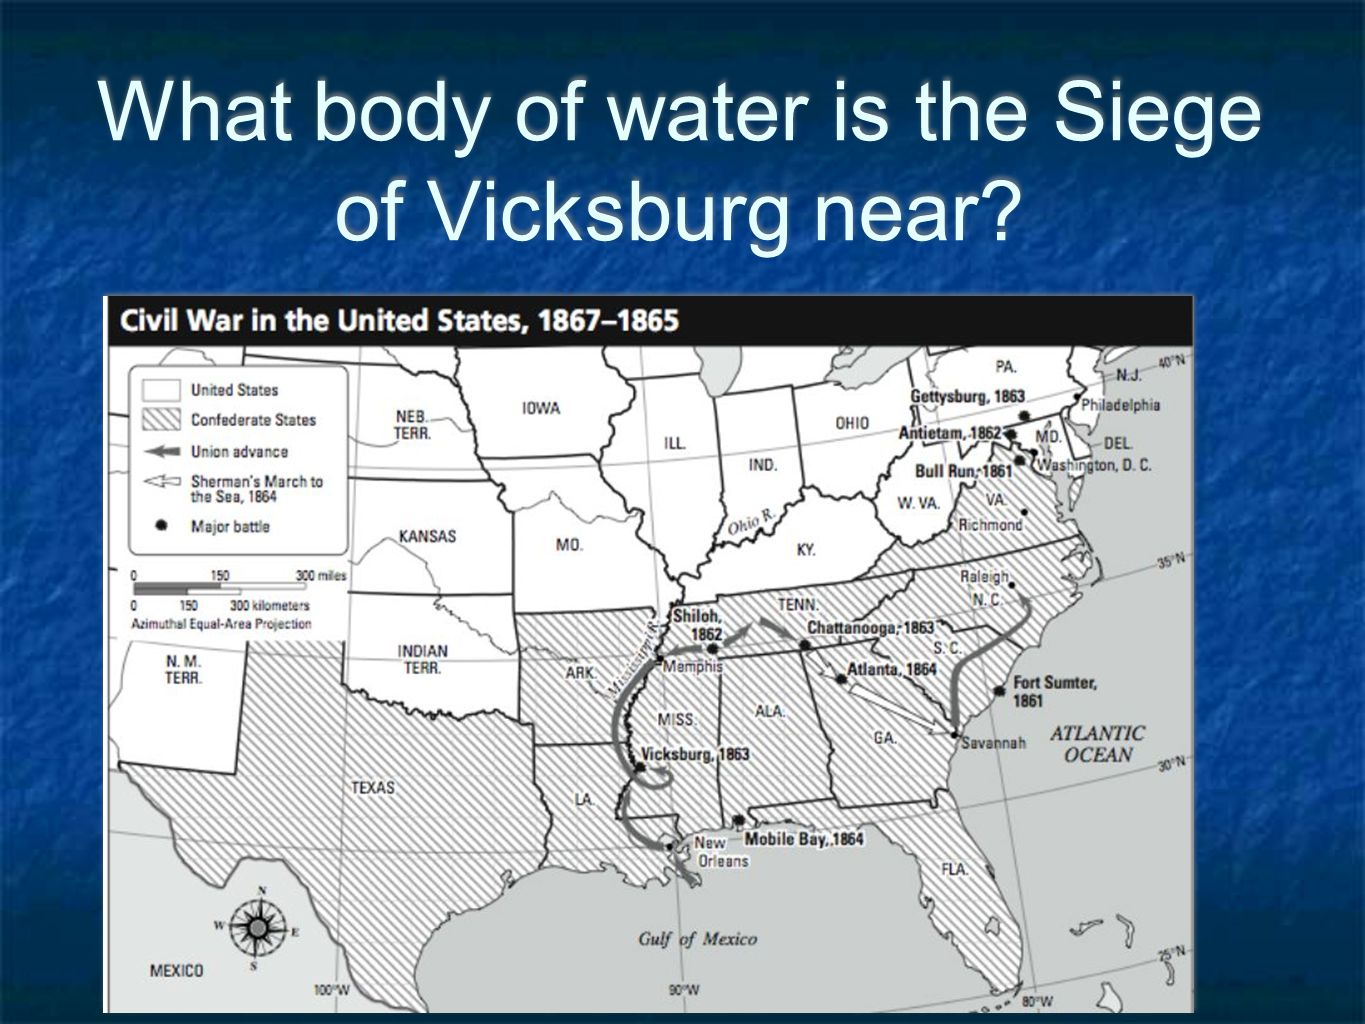 What body of water is the Siege of Vicksburg near